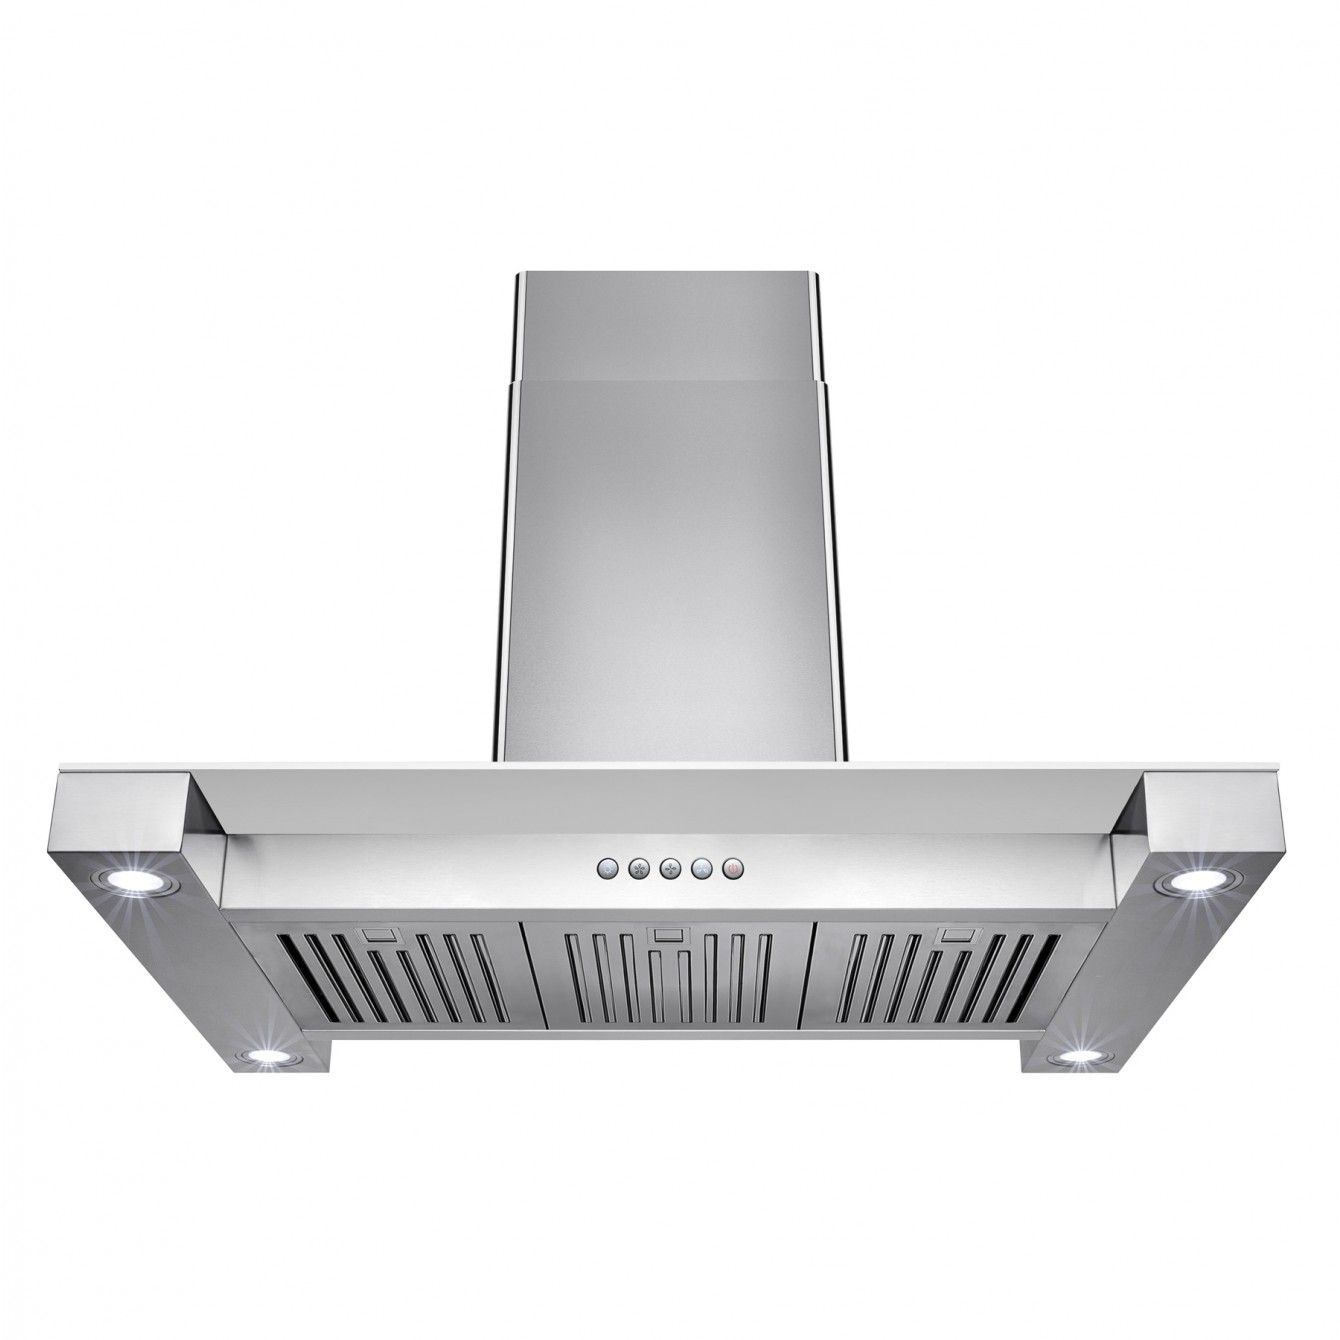 Golden Vantage Rh0278 36 In Convertible Kitchen Island Mount Range Hood In Stainless Steel With Touch Controls Island Mount Range Hood Range Hoods Stainless